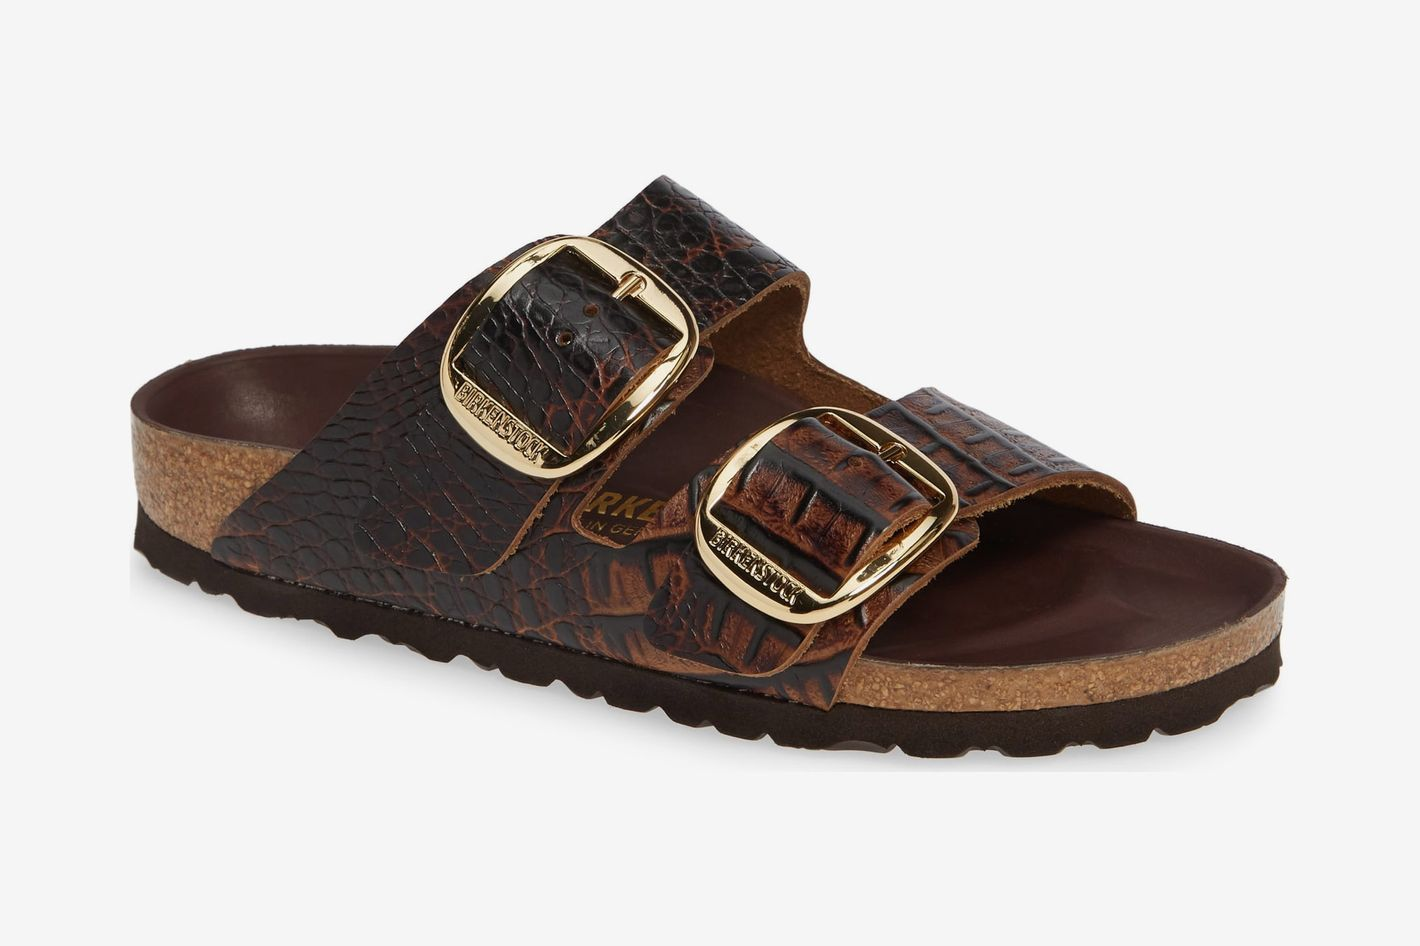 Birkenstock Arizona Big Buckle Gator Brown Leather